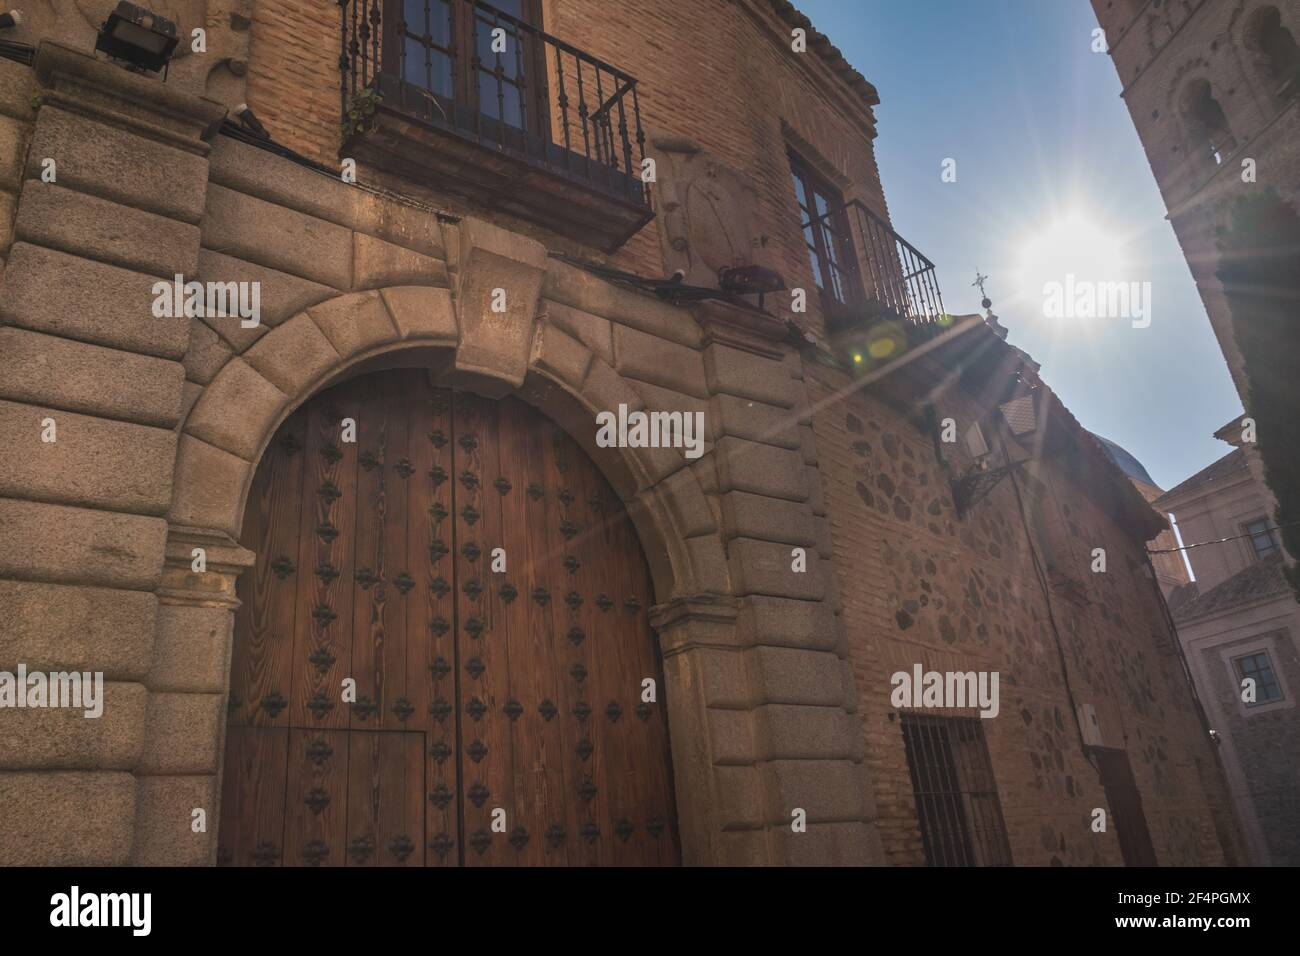 View of an old facade in the streets of Toledo Spain Stock Photo